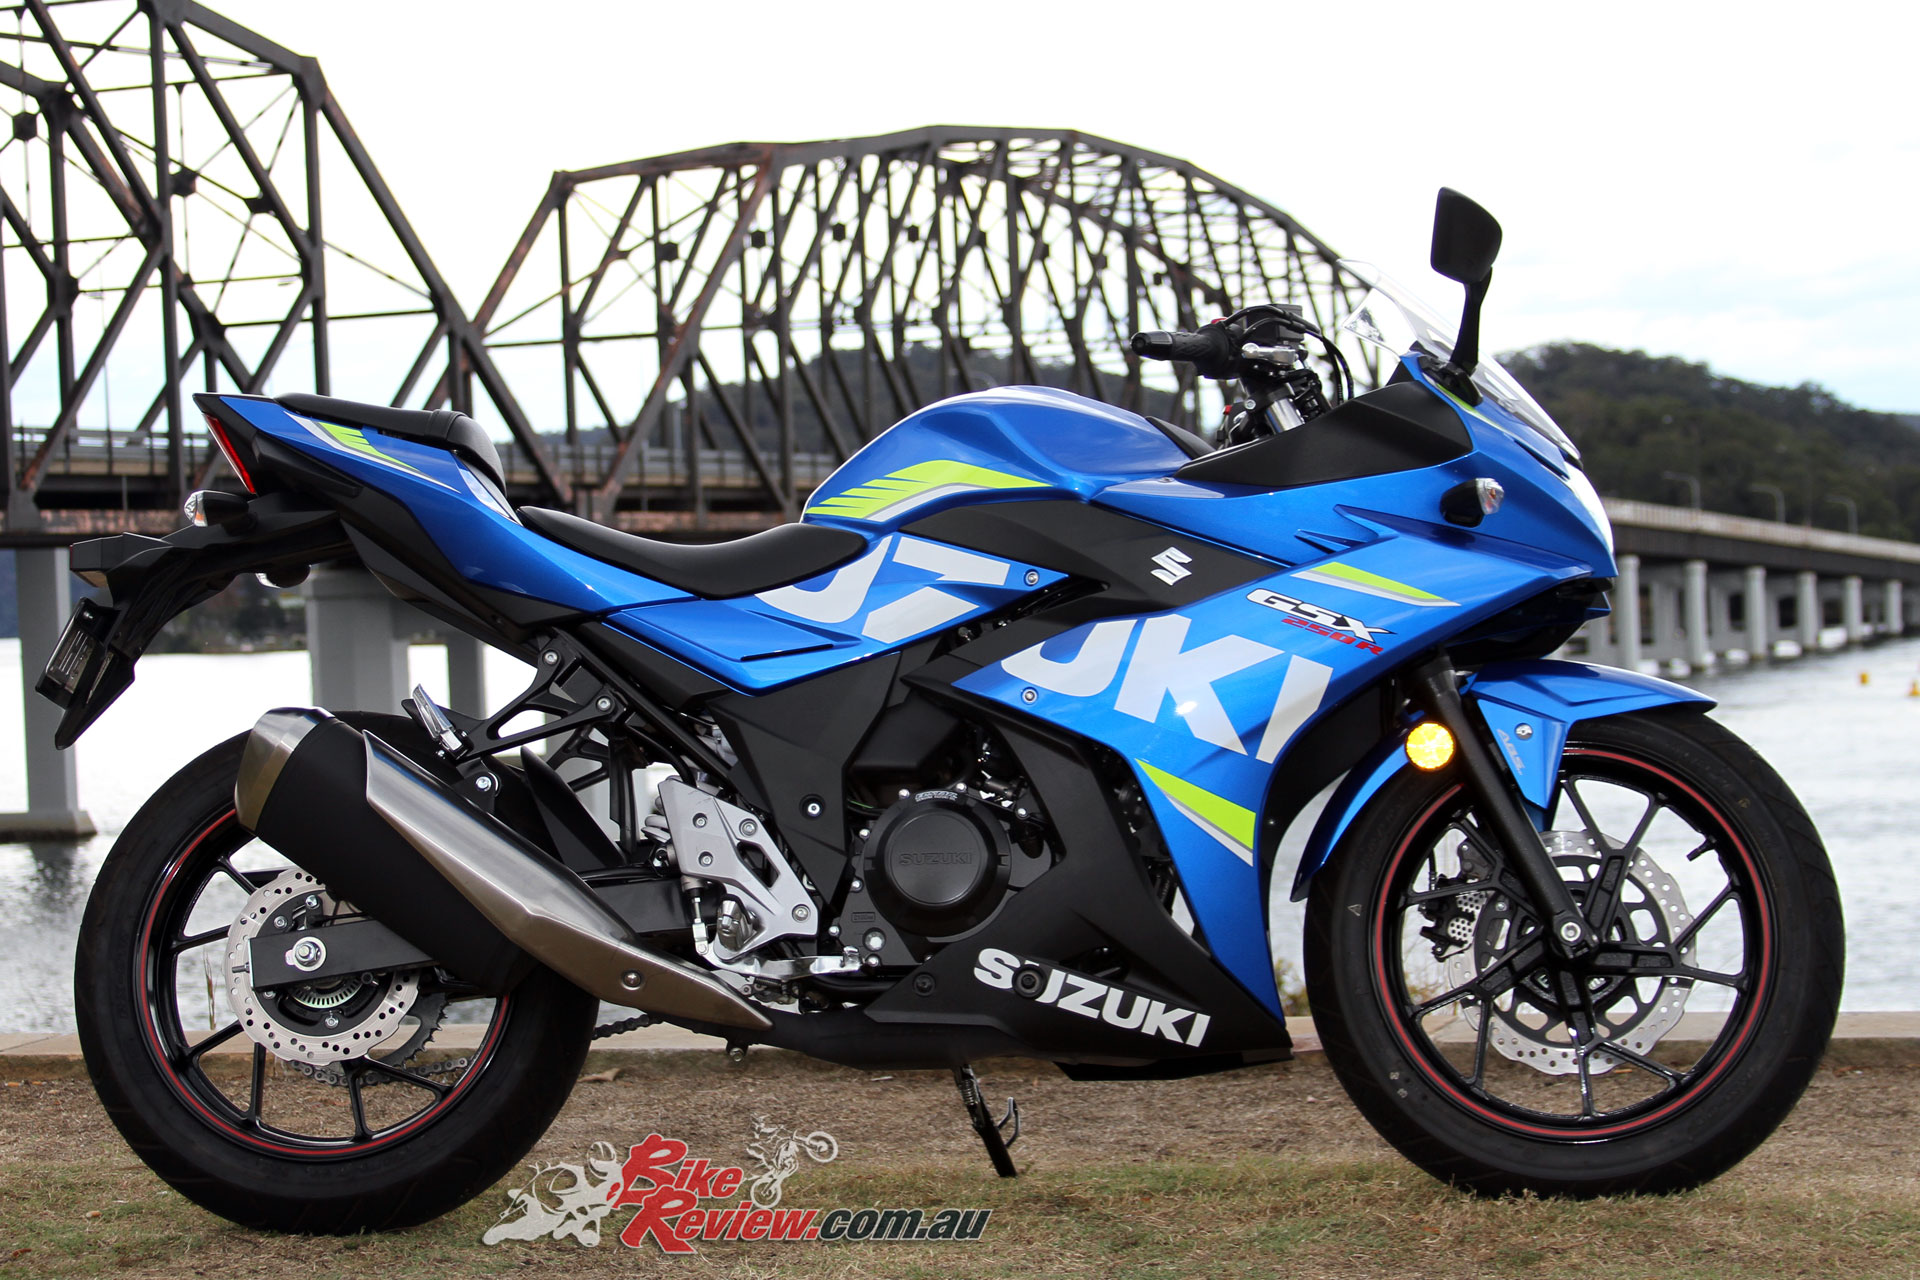 Overall the Suzuki GSX250R is an ideal beginners option or well mannered smaller capacity commuter for those not overly worried about performance